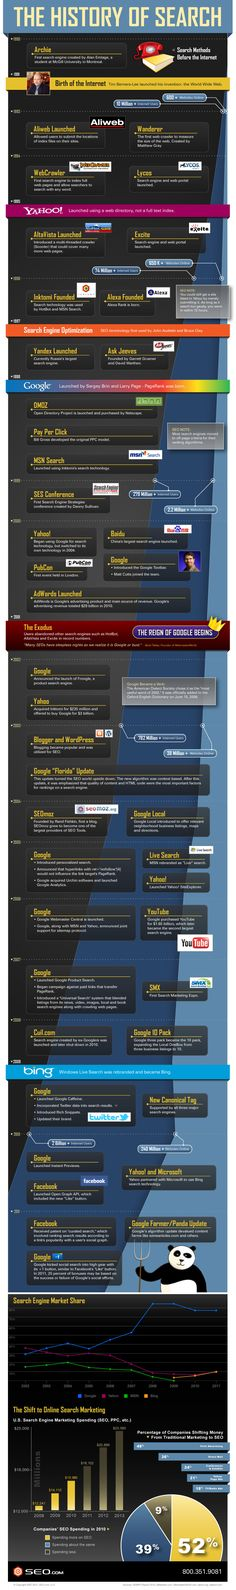 SEO Infographics The History of Search and SEO Long Tail Keywords #SEO Services #SMO services #1stITSolution.com